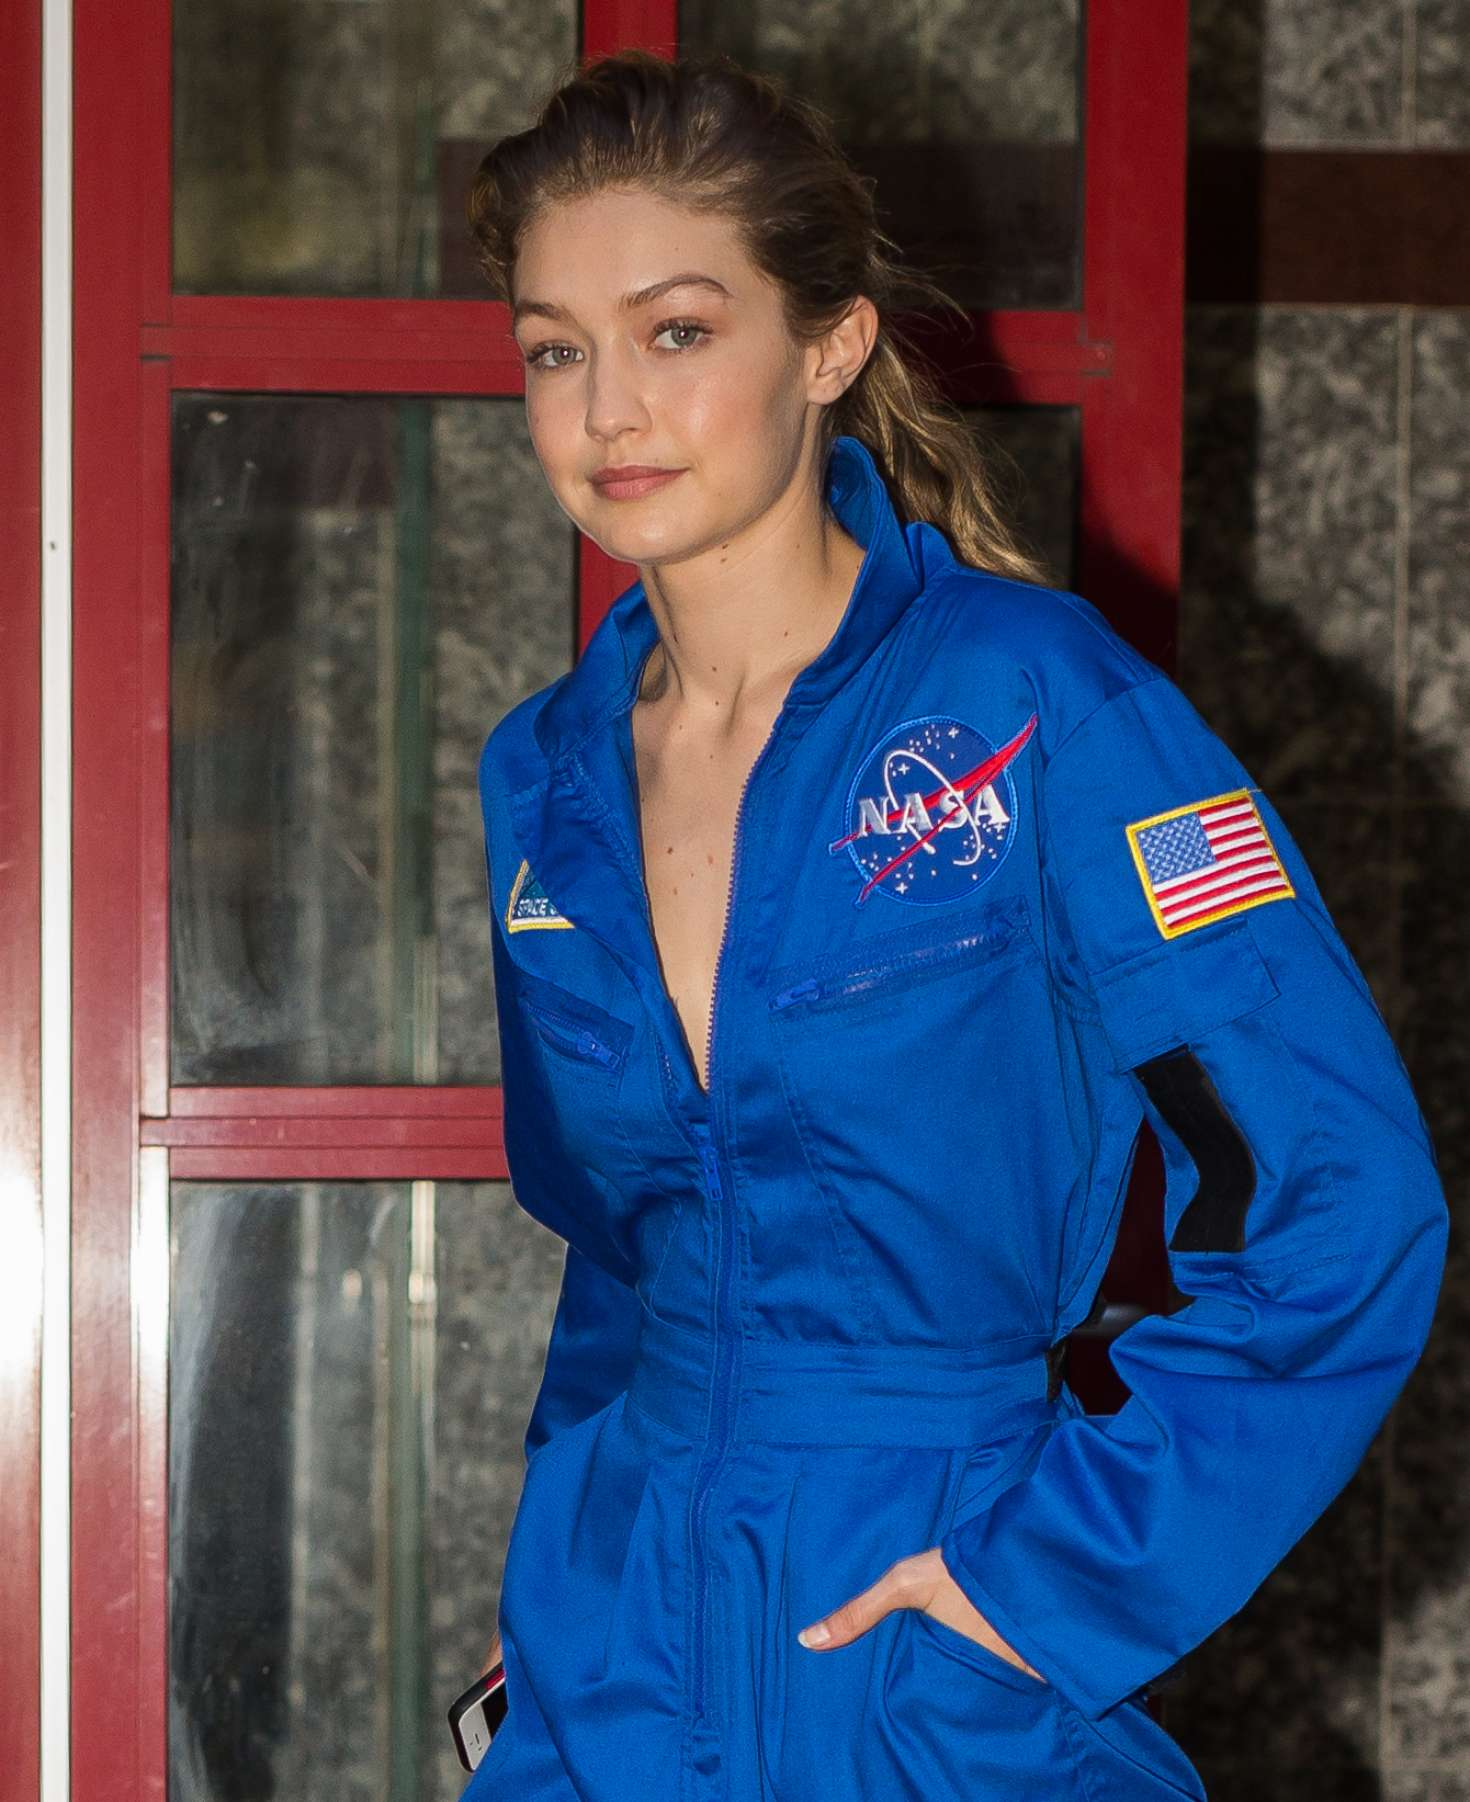 nasa jumpsuit blue - photo #44